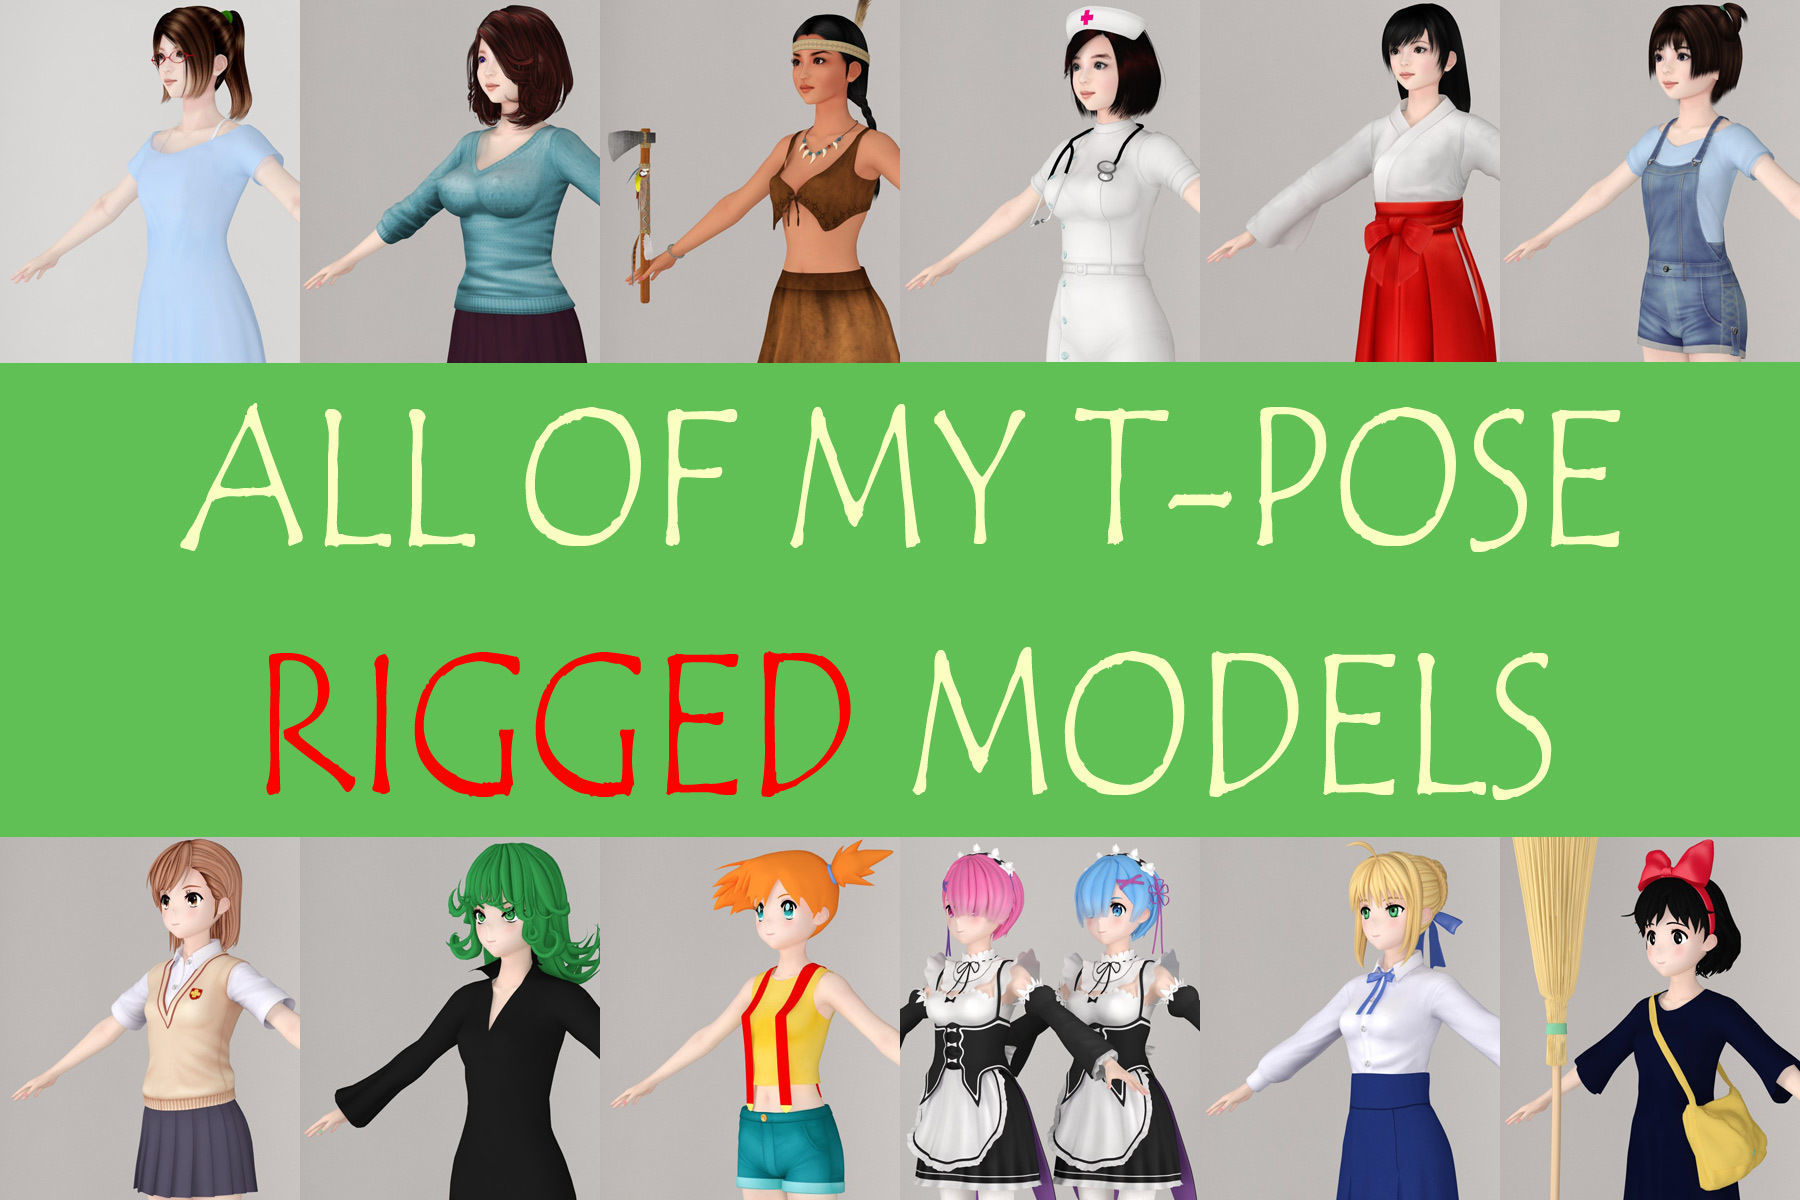 All of my T pose rigged girls